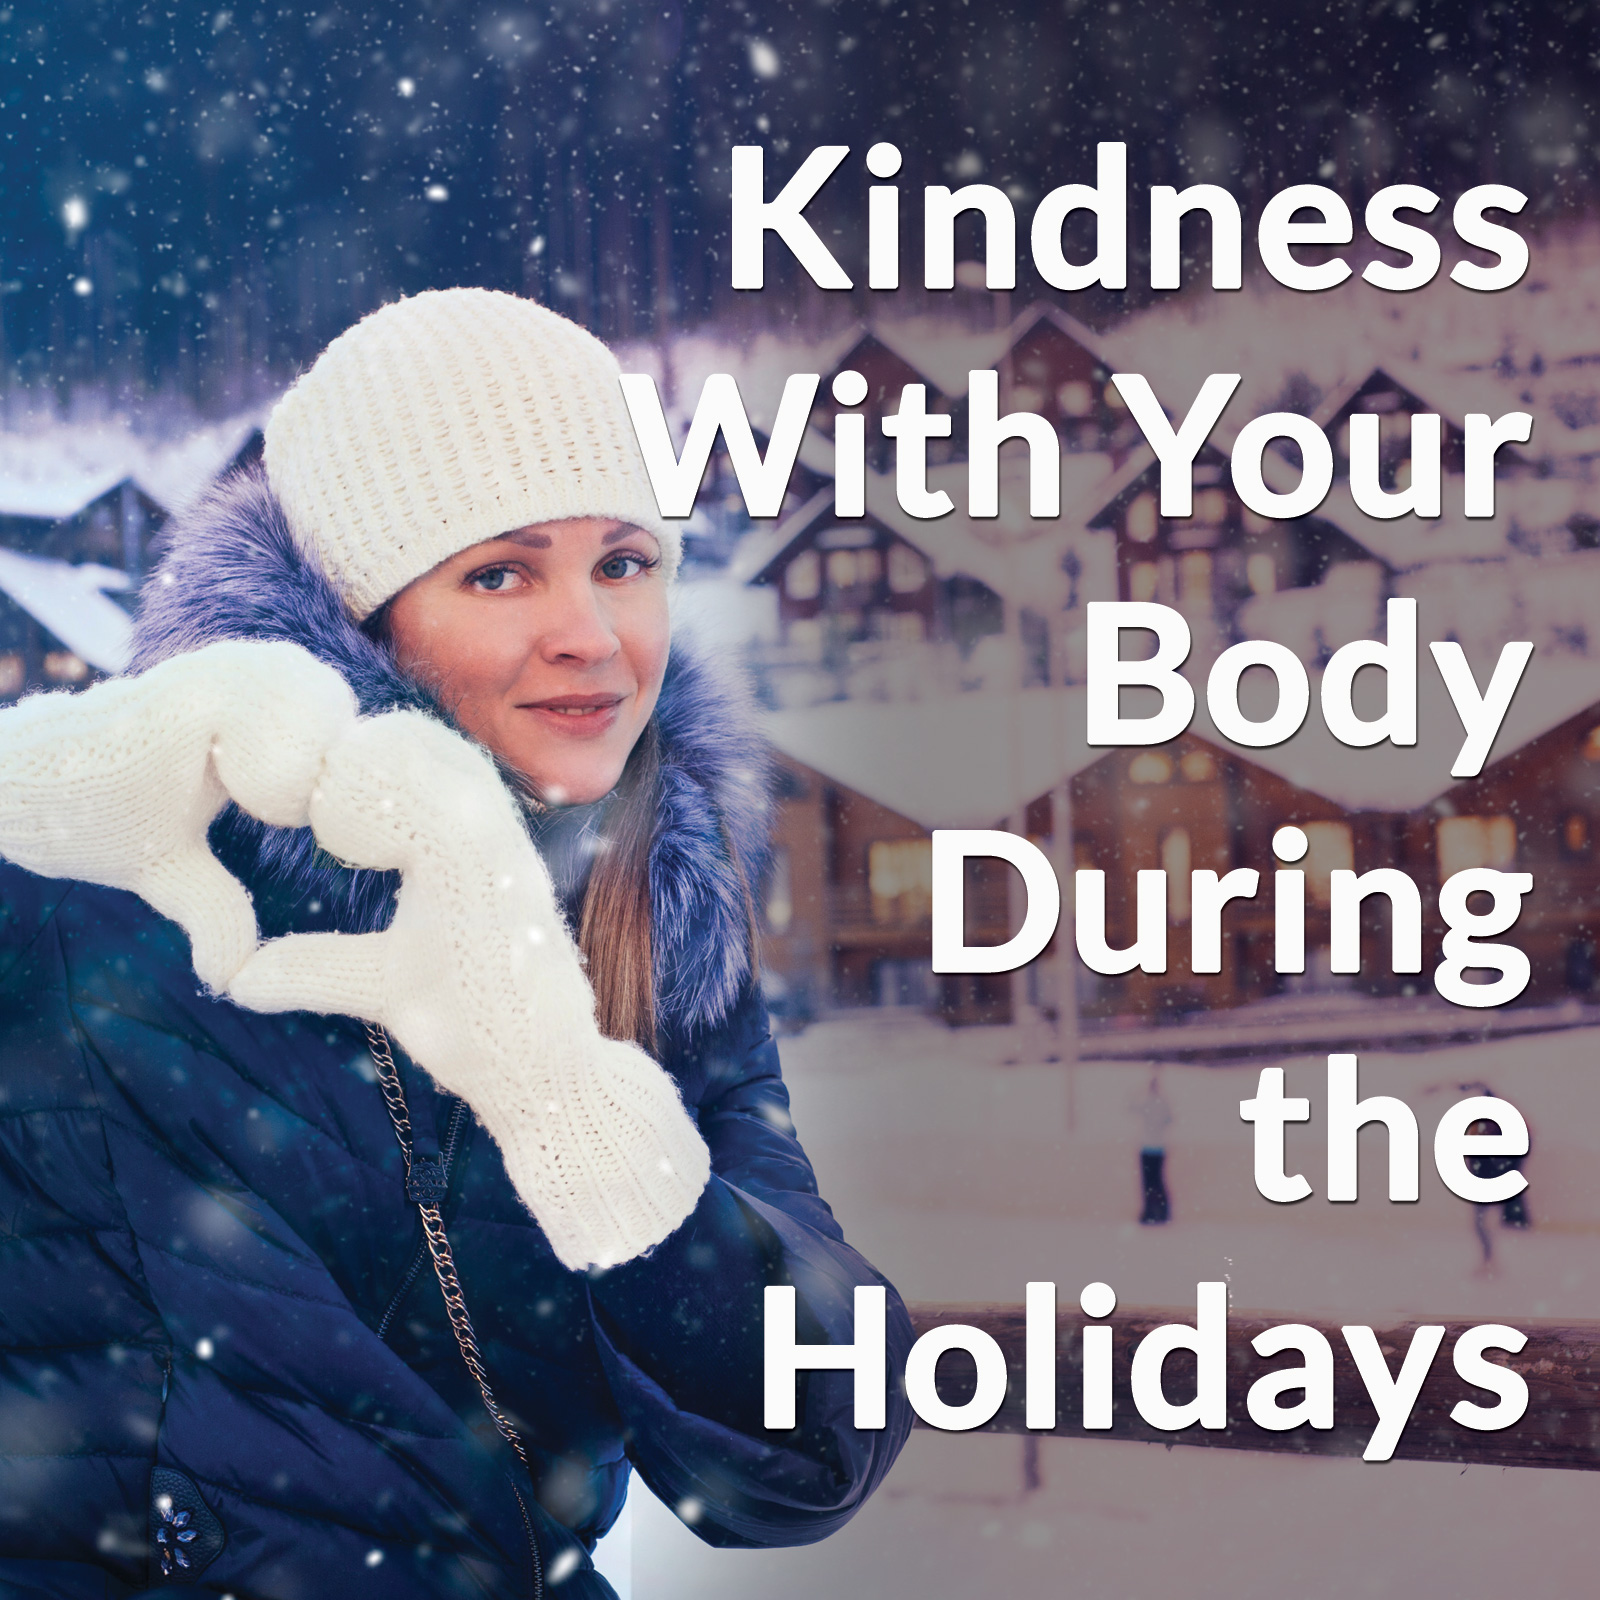 Kindness With Your Body During the Holidays